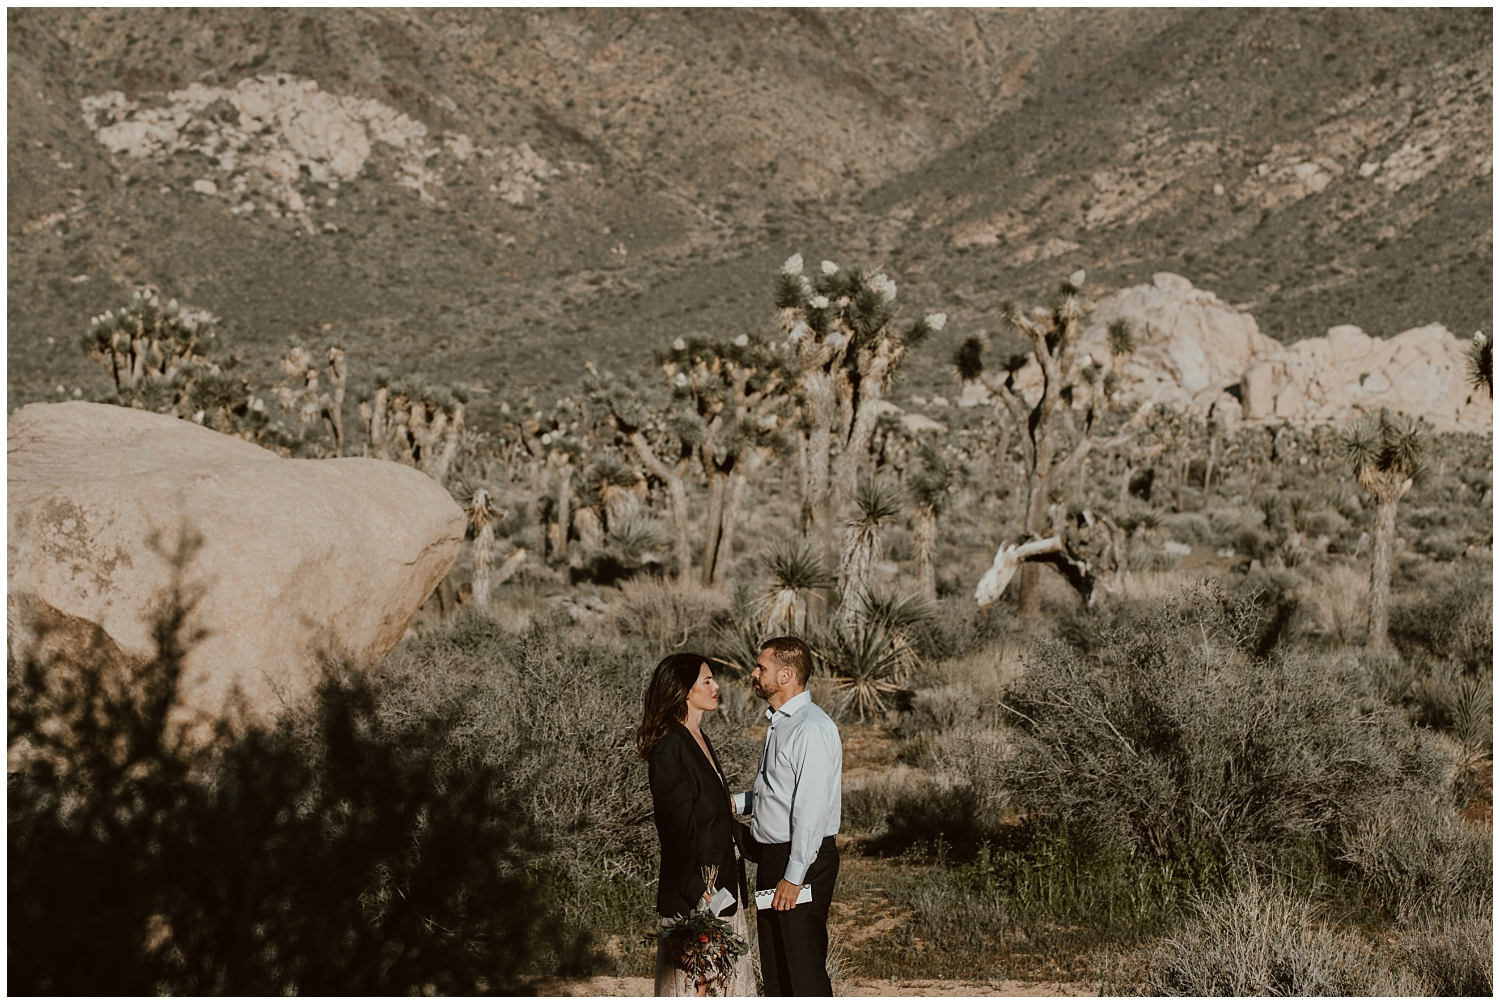 Cap-Rock-Joshua-Tree-Elopement-0026.jpg